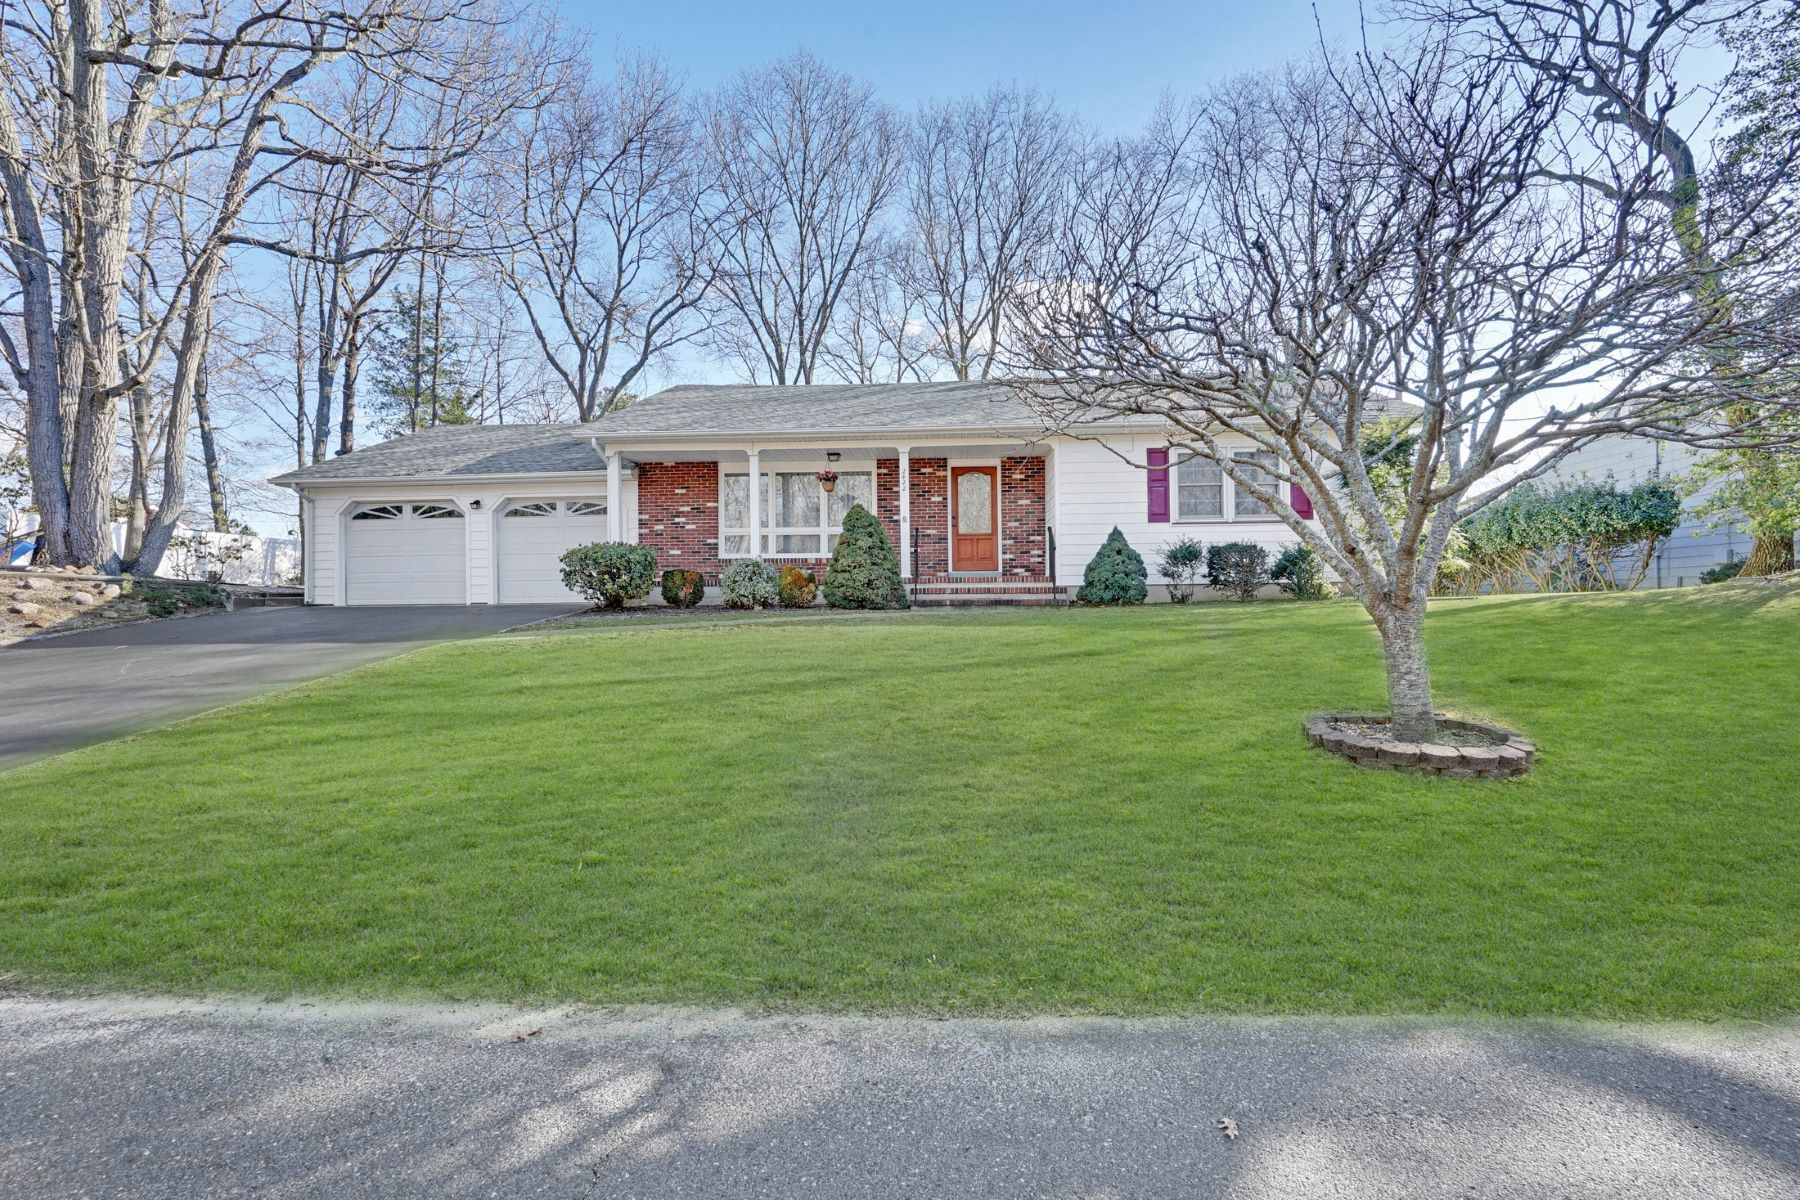 Single Family Home for Sale at Desirable Manasquan Park Ranch 2422 Sycamore Street, Wall, New Jersey 08736 United States